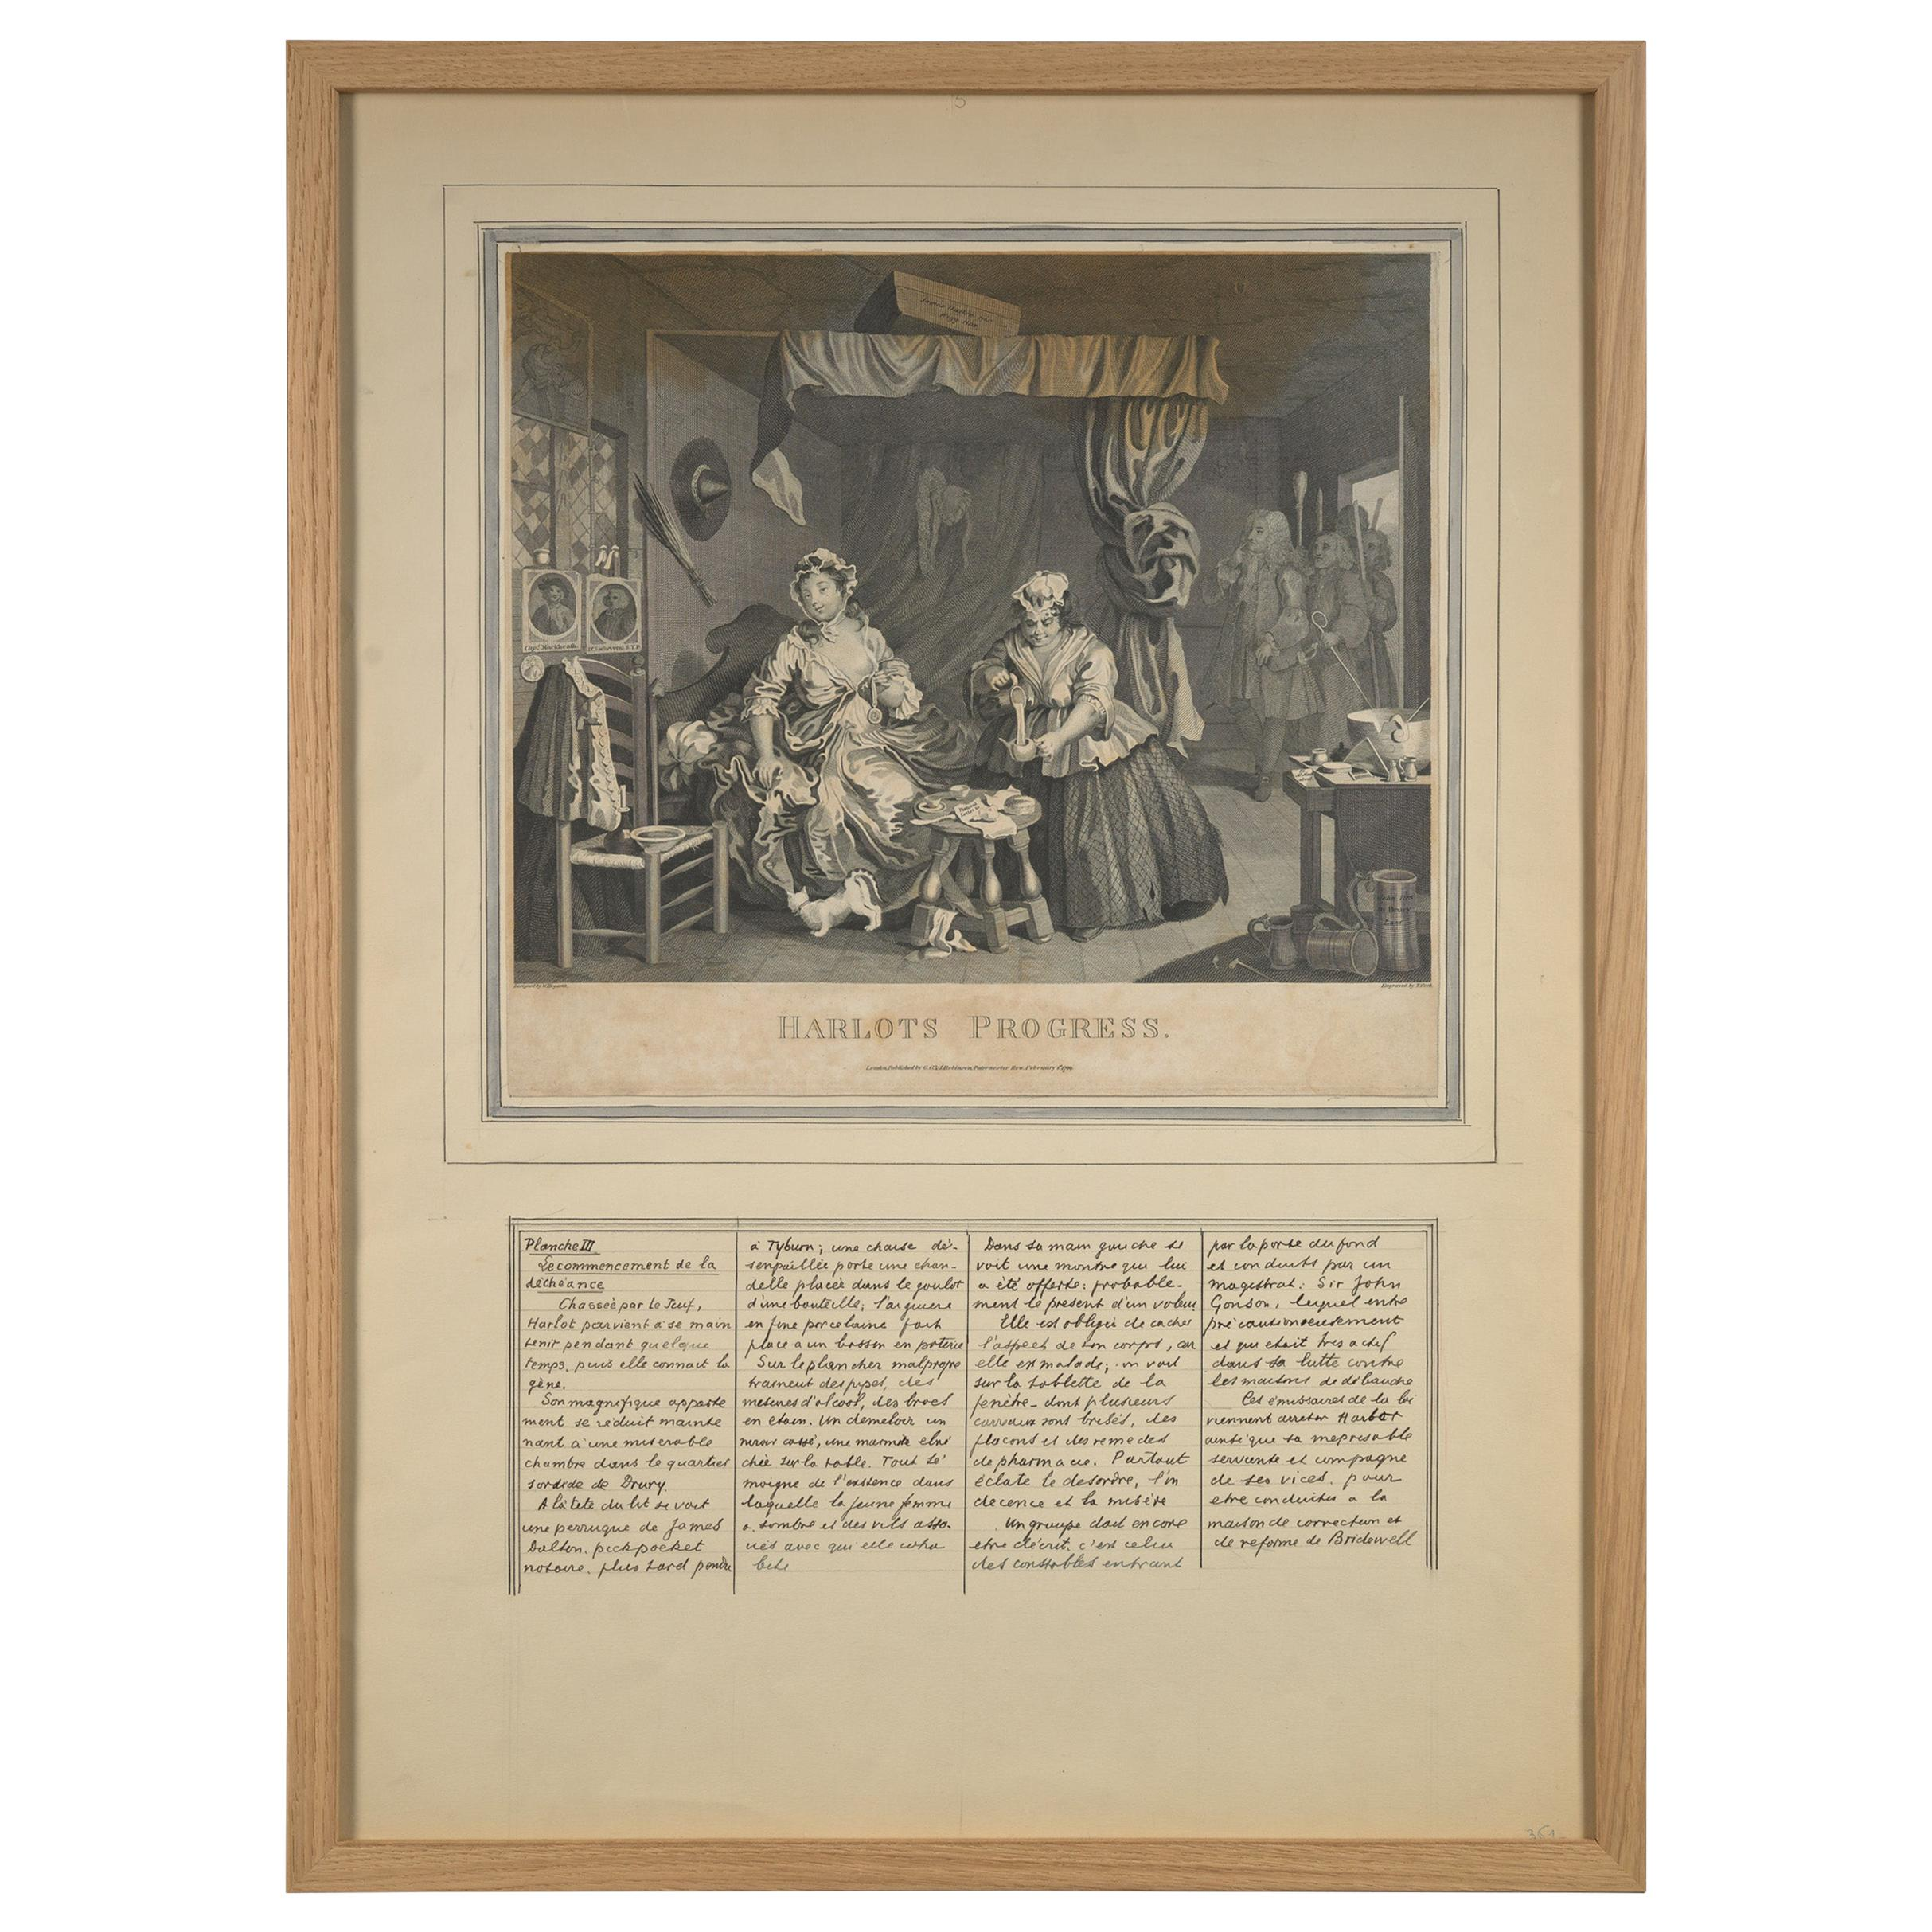 William Hogarth, Harlot's Progress, Litographs with French Comments